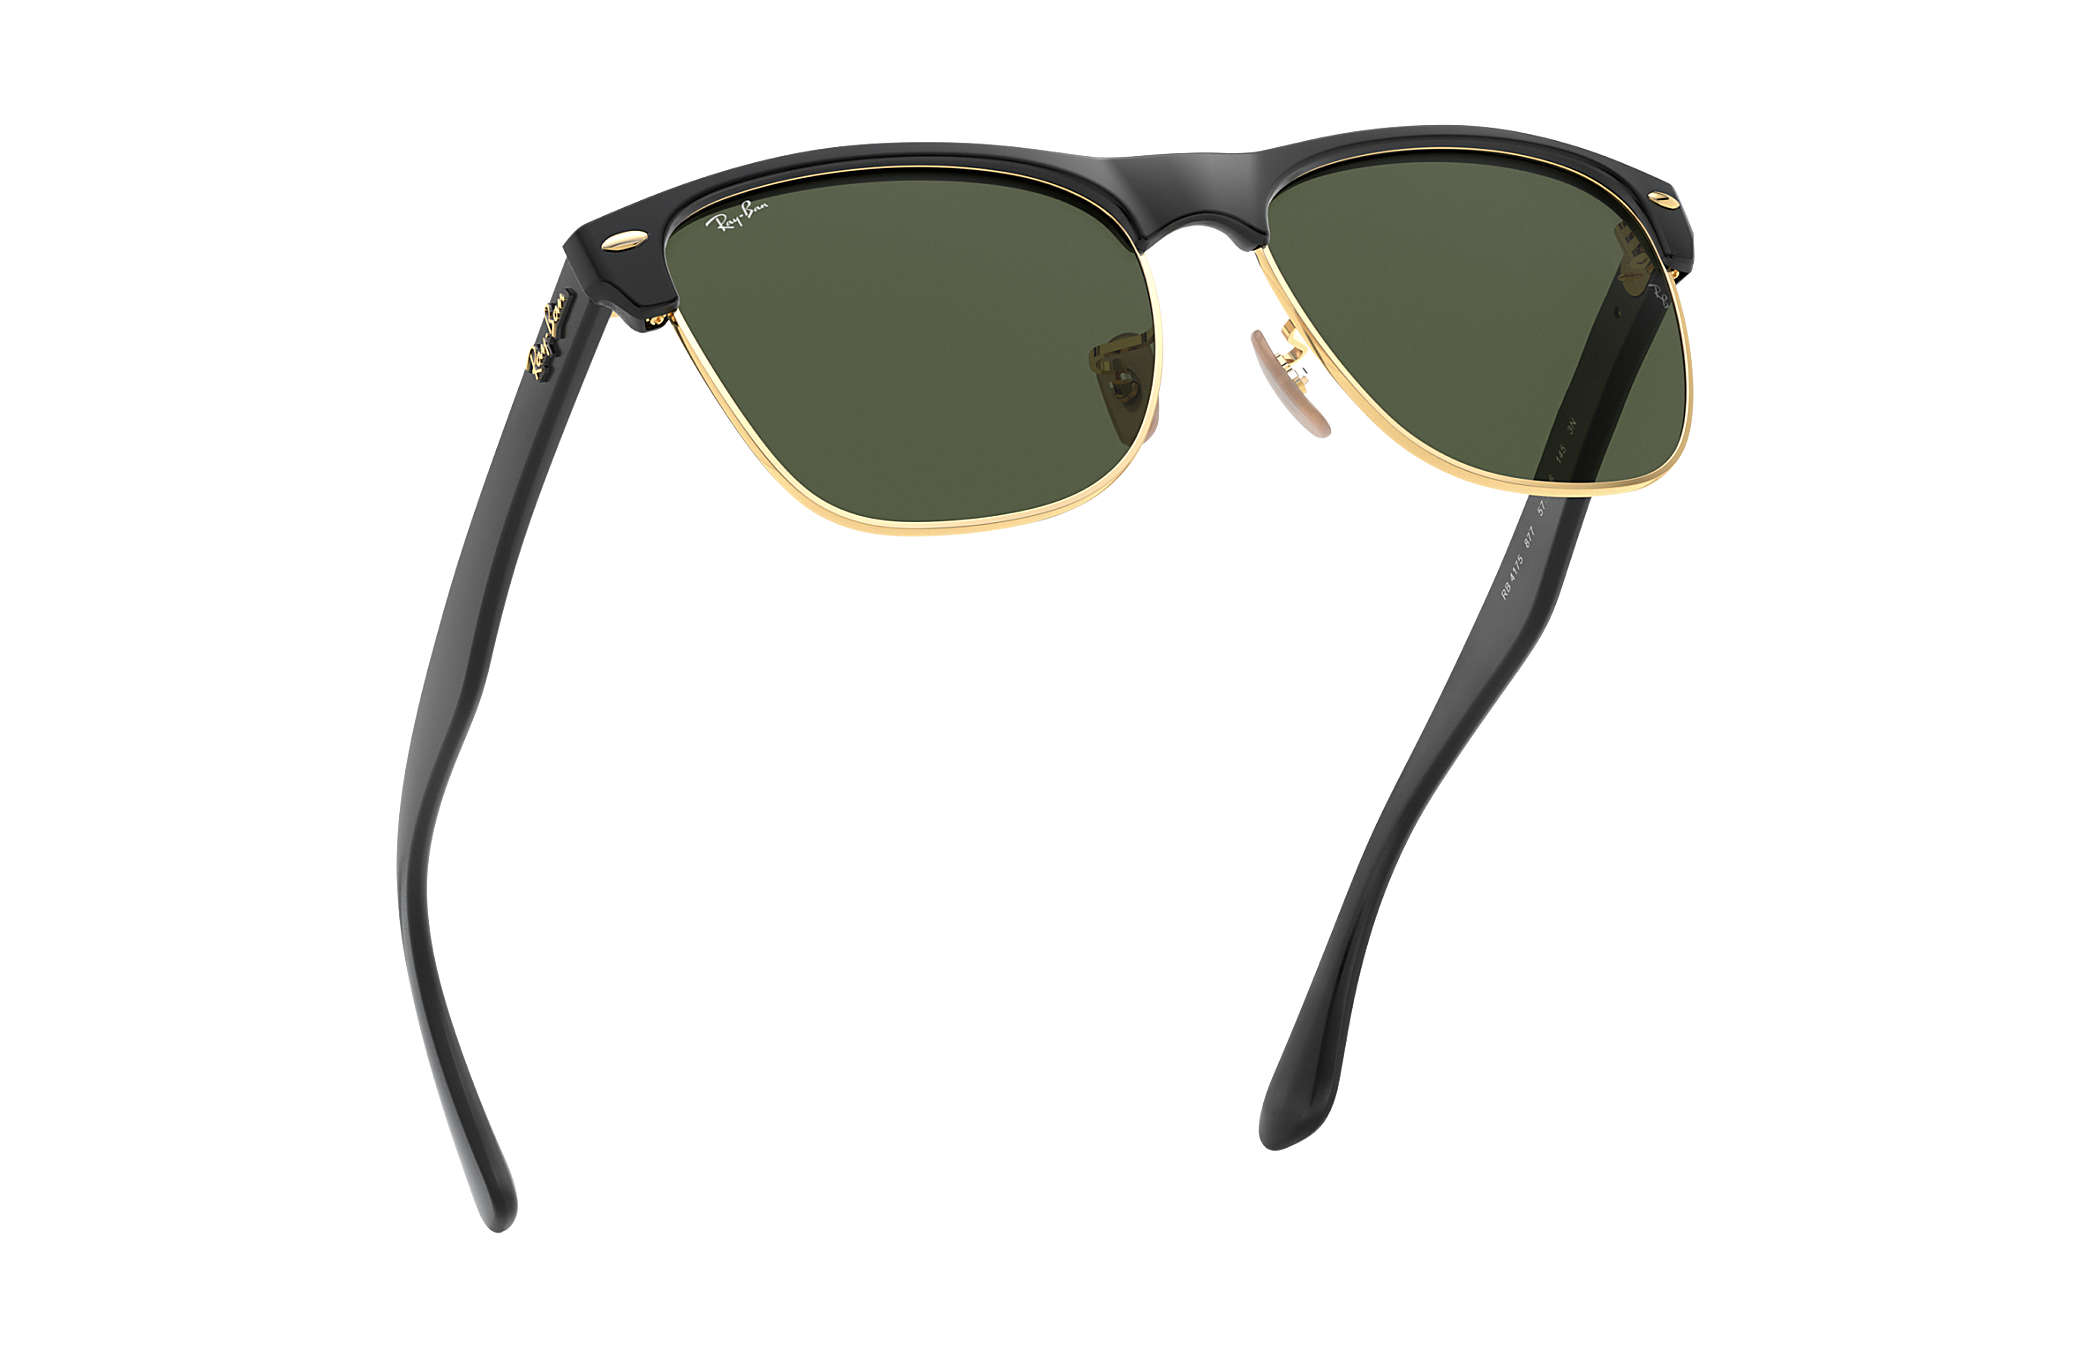 a88ae7d184 Ray-Ban Clubmaster Oversized RB4175 Black - Nylon - Green Lenses ...